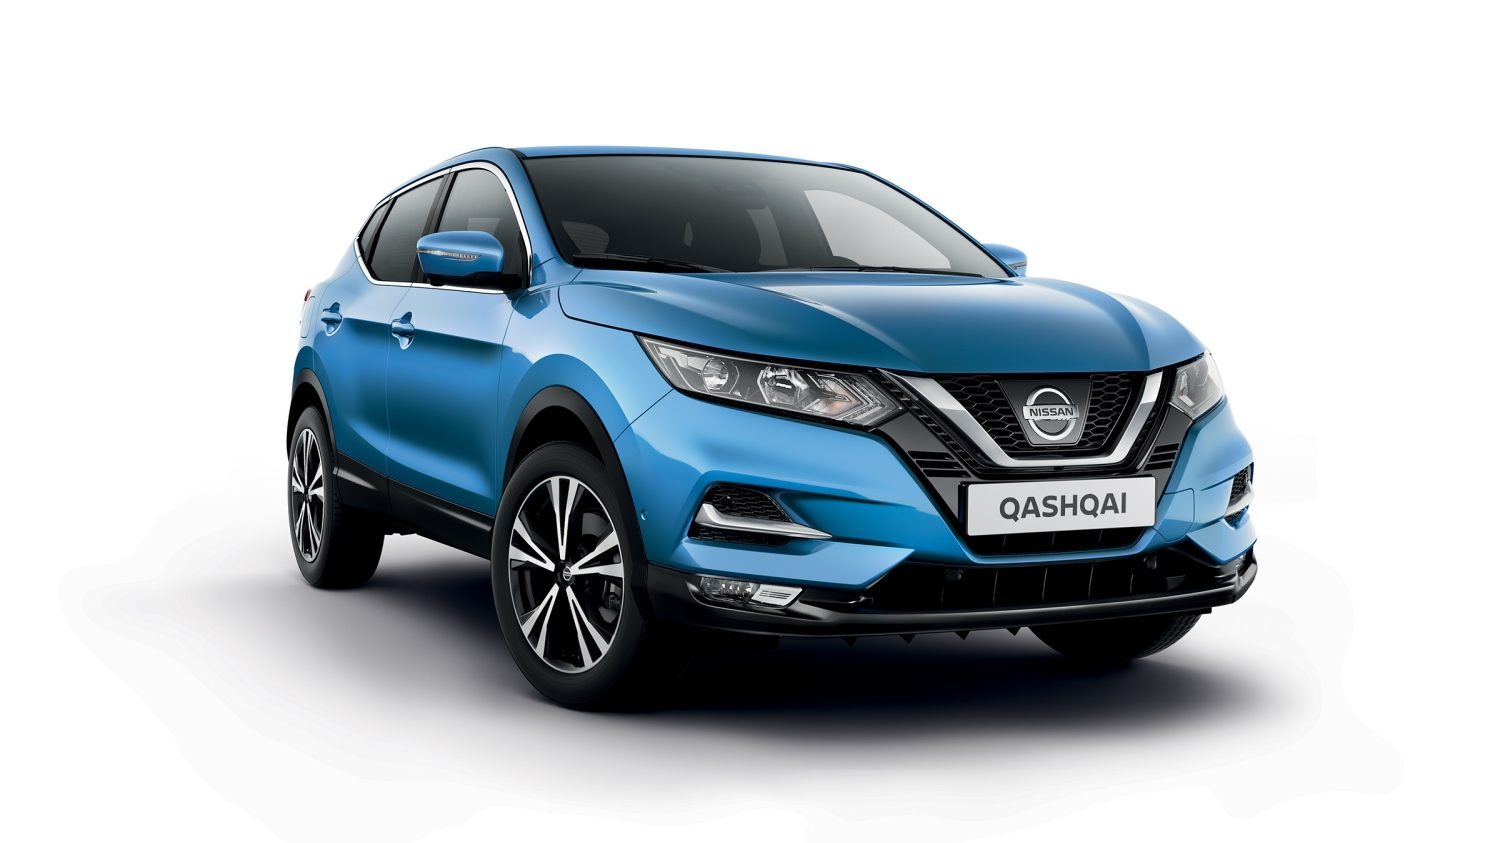 pre os e vers es nissan qashqai crossover 4x4 nissan. Black Bedroom Furniture Sets. Home Design Ideas